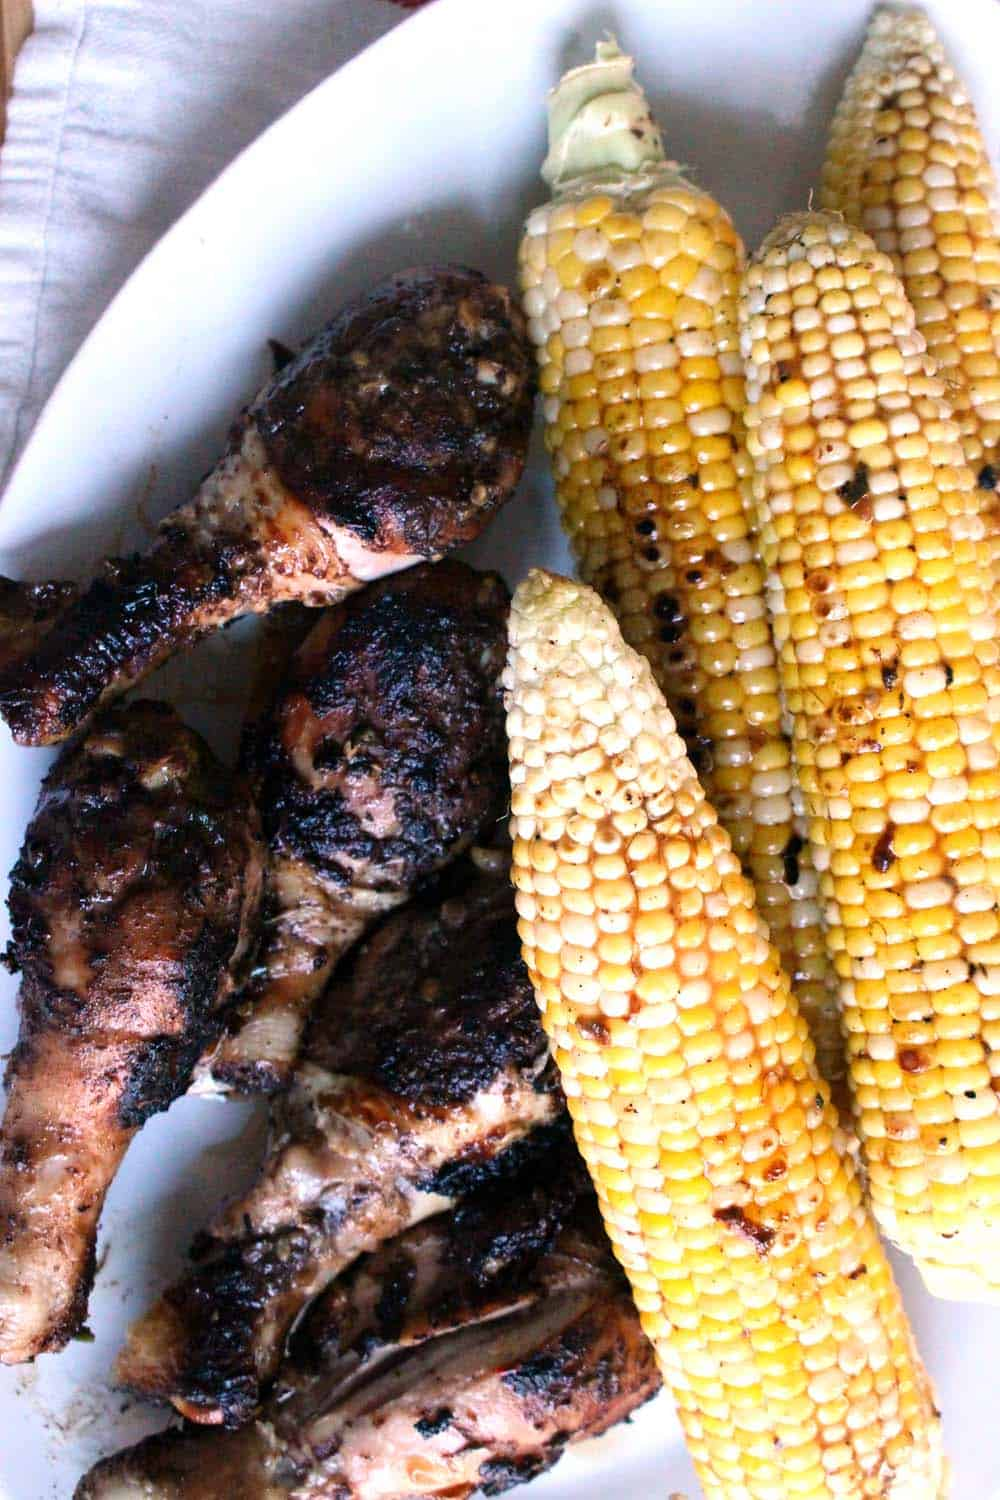 Bird's eye view of four grilled ears of corn on the cob next to several grilled and seasoned chicken drumsticks.